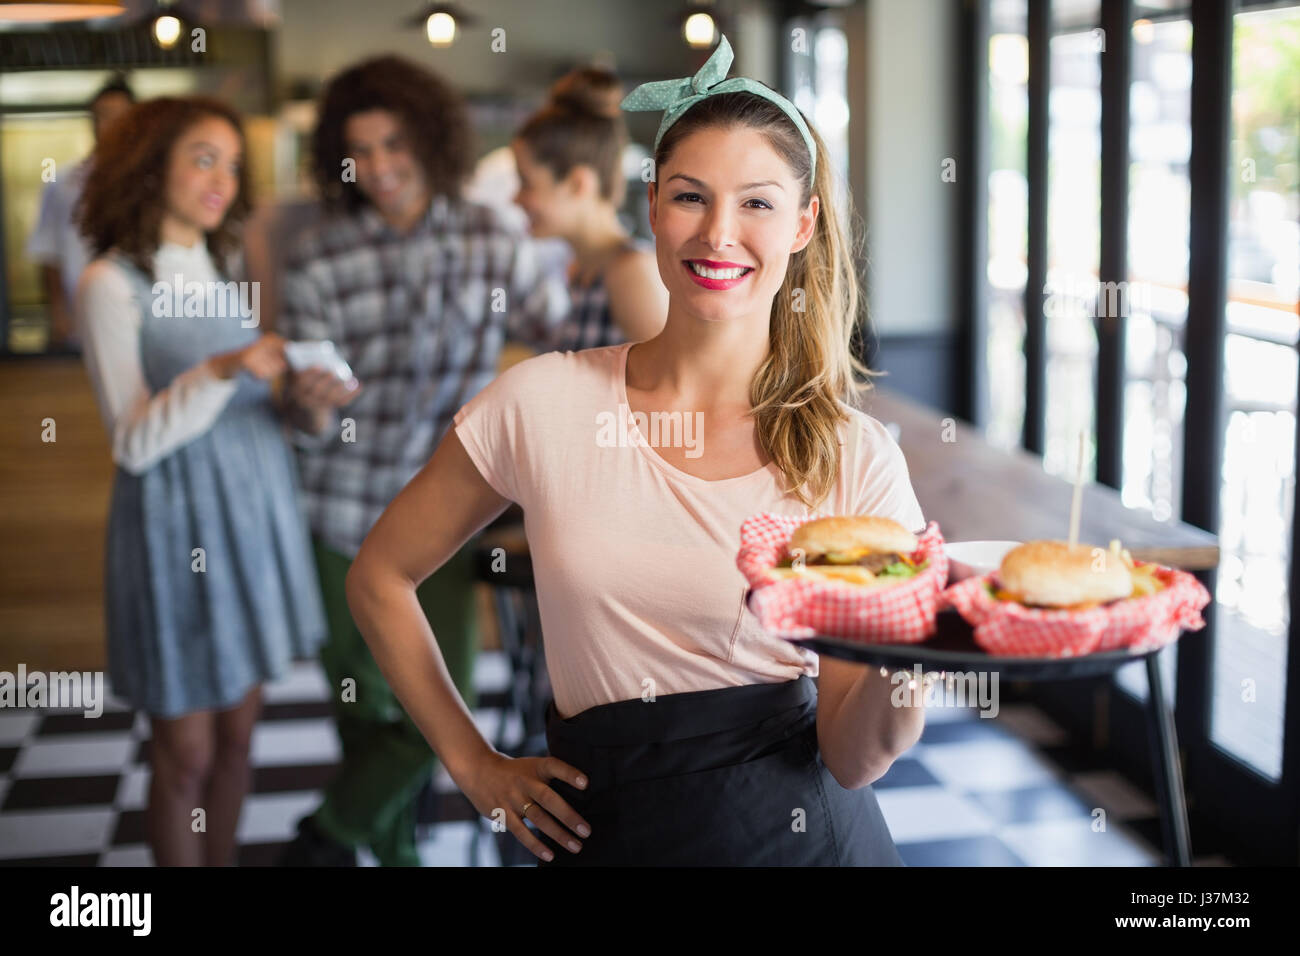 Portrait of smiling young waitress serving burger with customers in background at restaurant - Stock Image